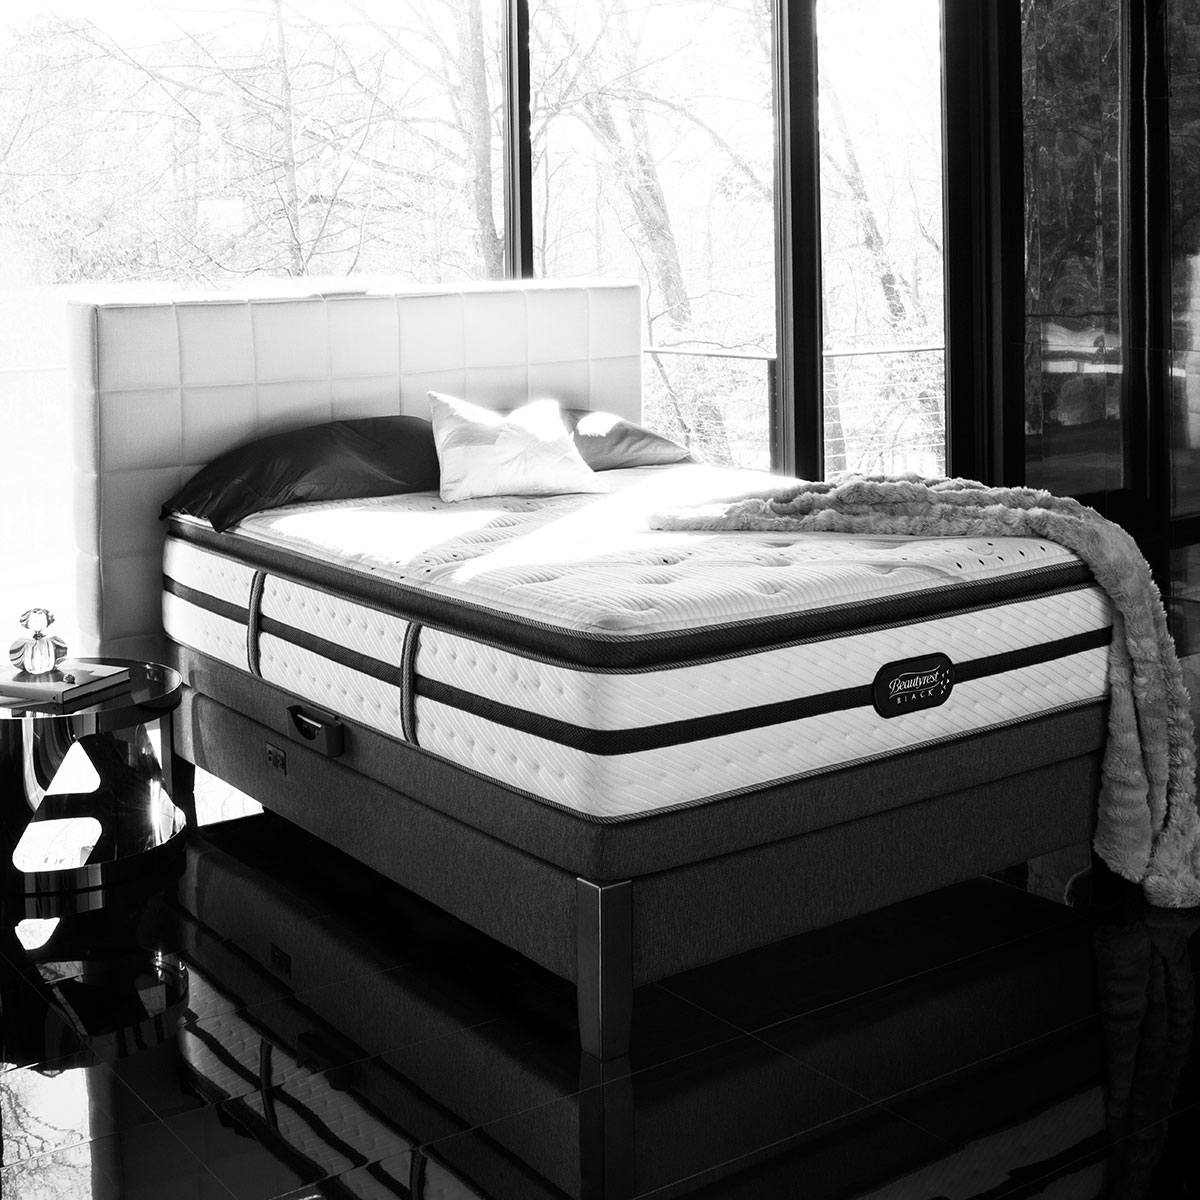 boxspringmatratze beautyrest aspen hier kaufen. Black Bedroom Furniture Sets. Home Design Ideas